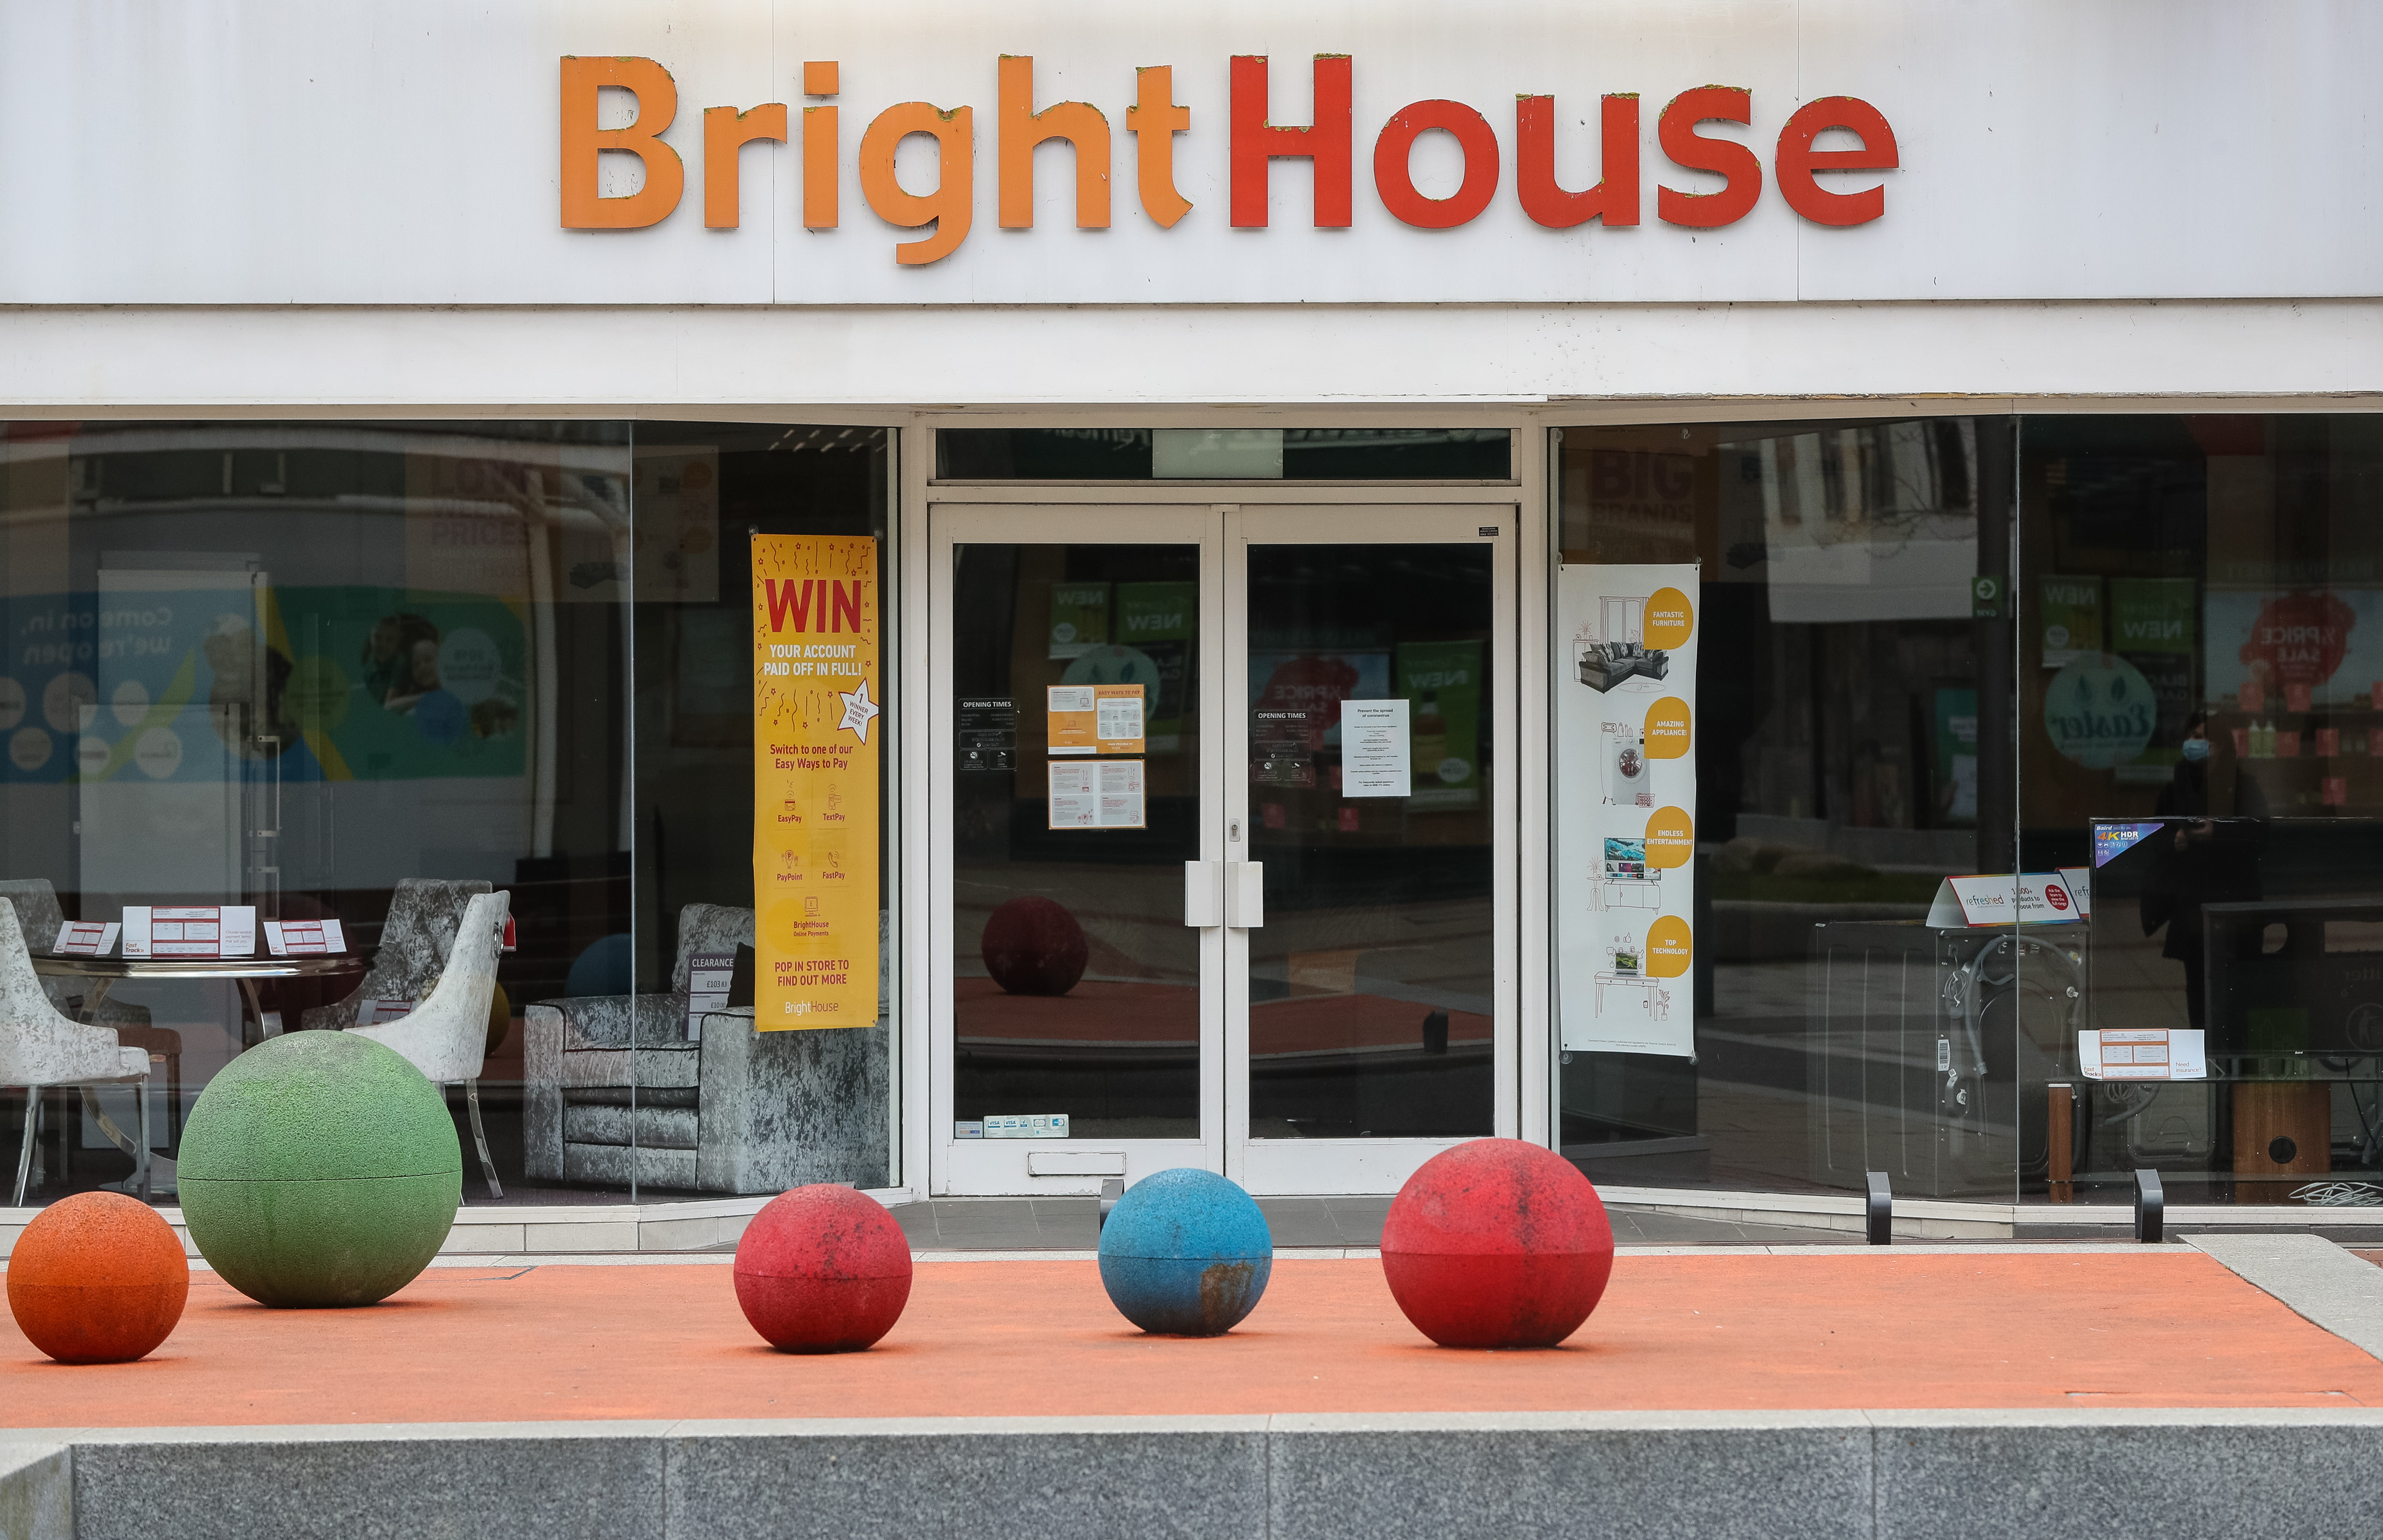 General view of a BrightHouse store in Marlowes, Hemel Hempstead, as the rent-to-own operator has confirmed it has fallen into administration with more than 2,400 jobs at risk. (Photo by Jonathan Brady/PA Images via Getty Images)